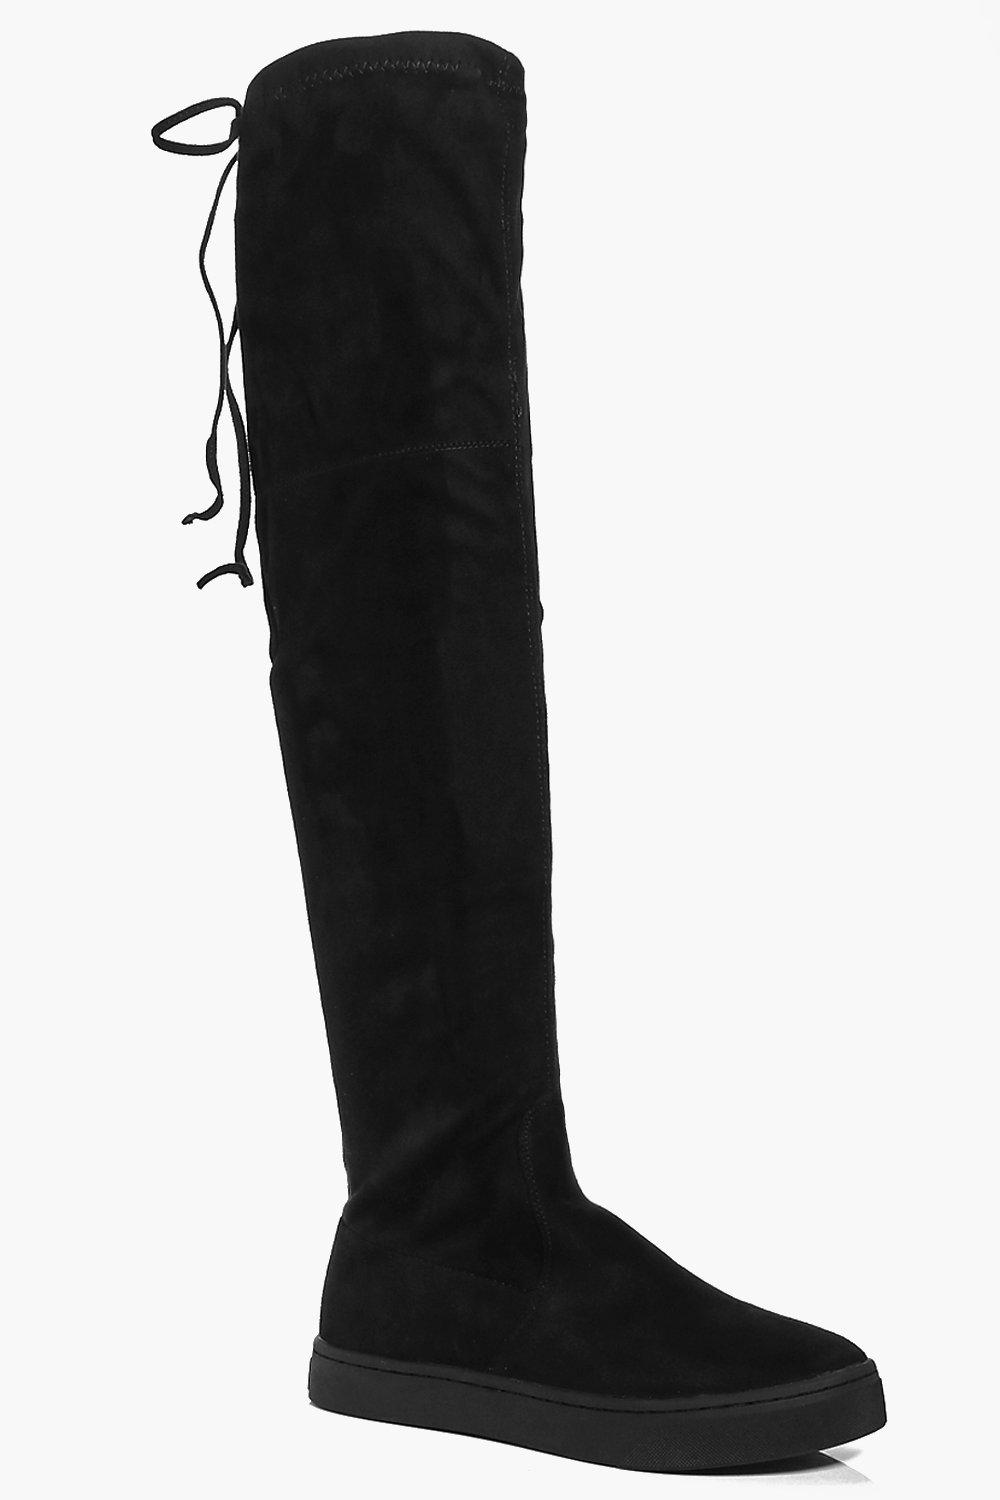 Clara Skater Over The Knee Boot